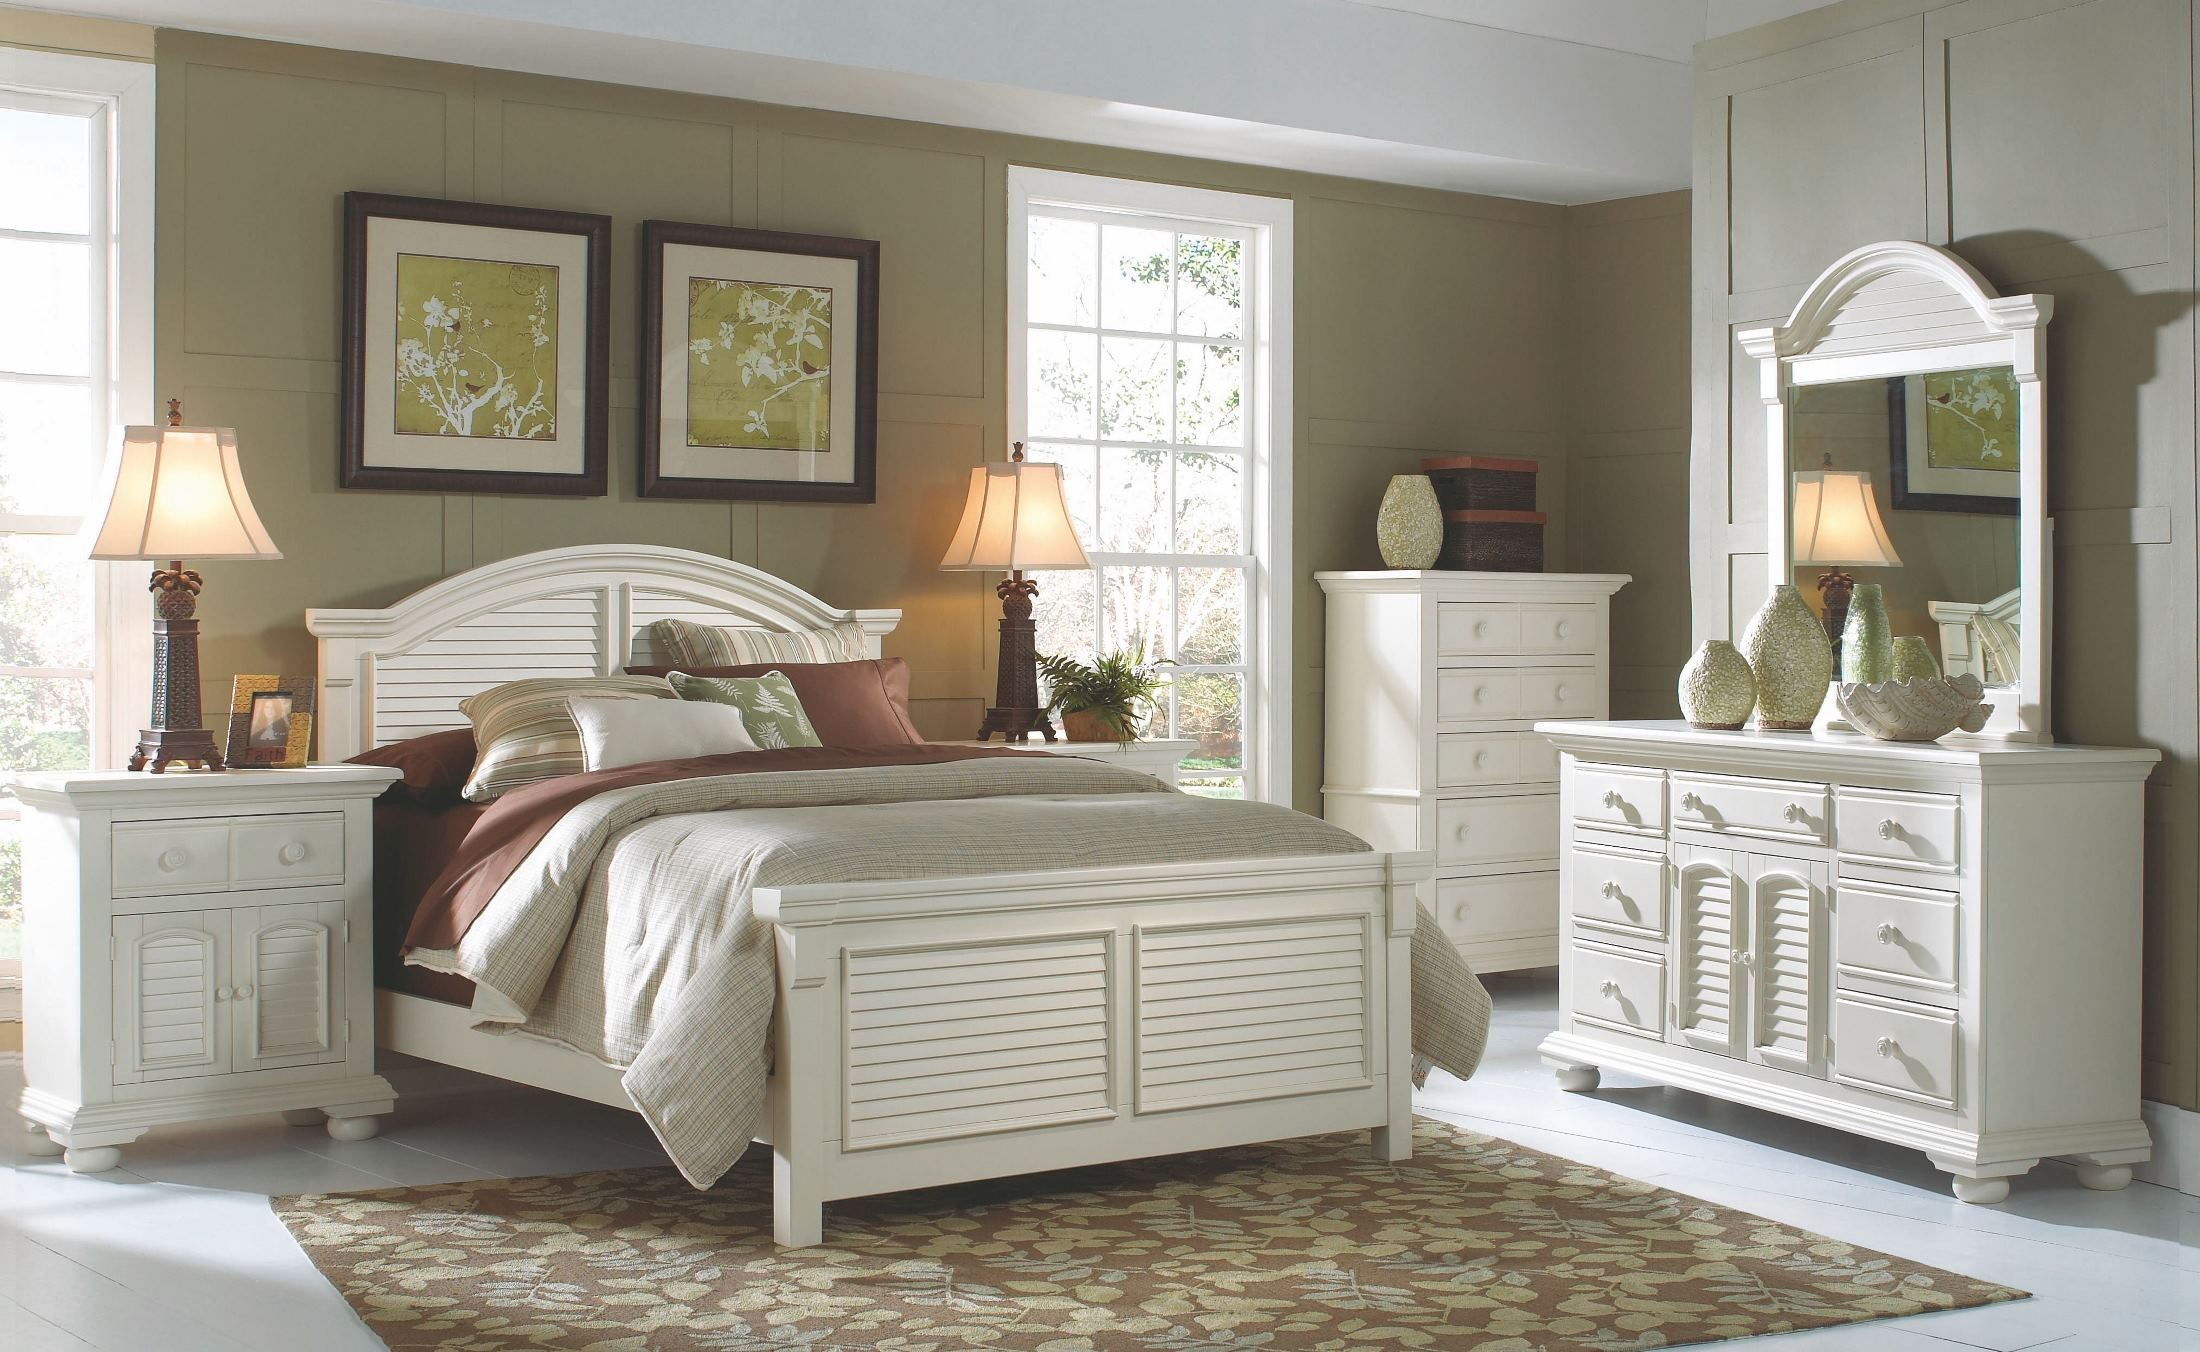 Cottage traditions white panel bedroom set from american woodcrafters coleman furniture Cottage retreat collection bedroom furniture